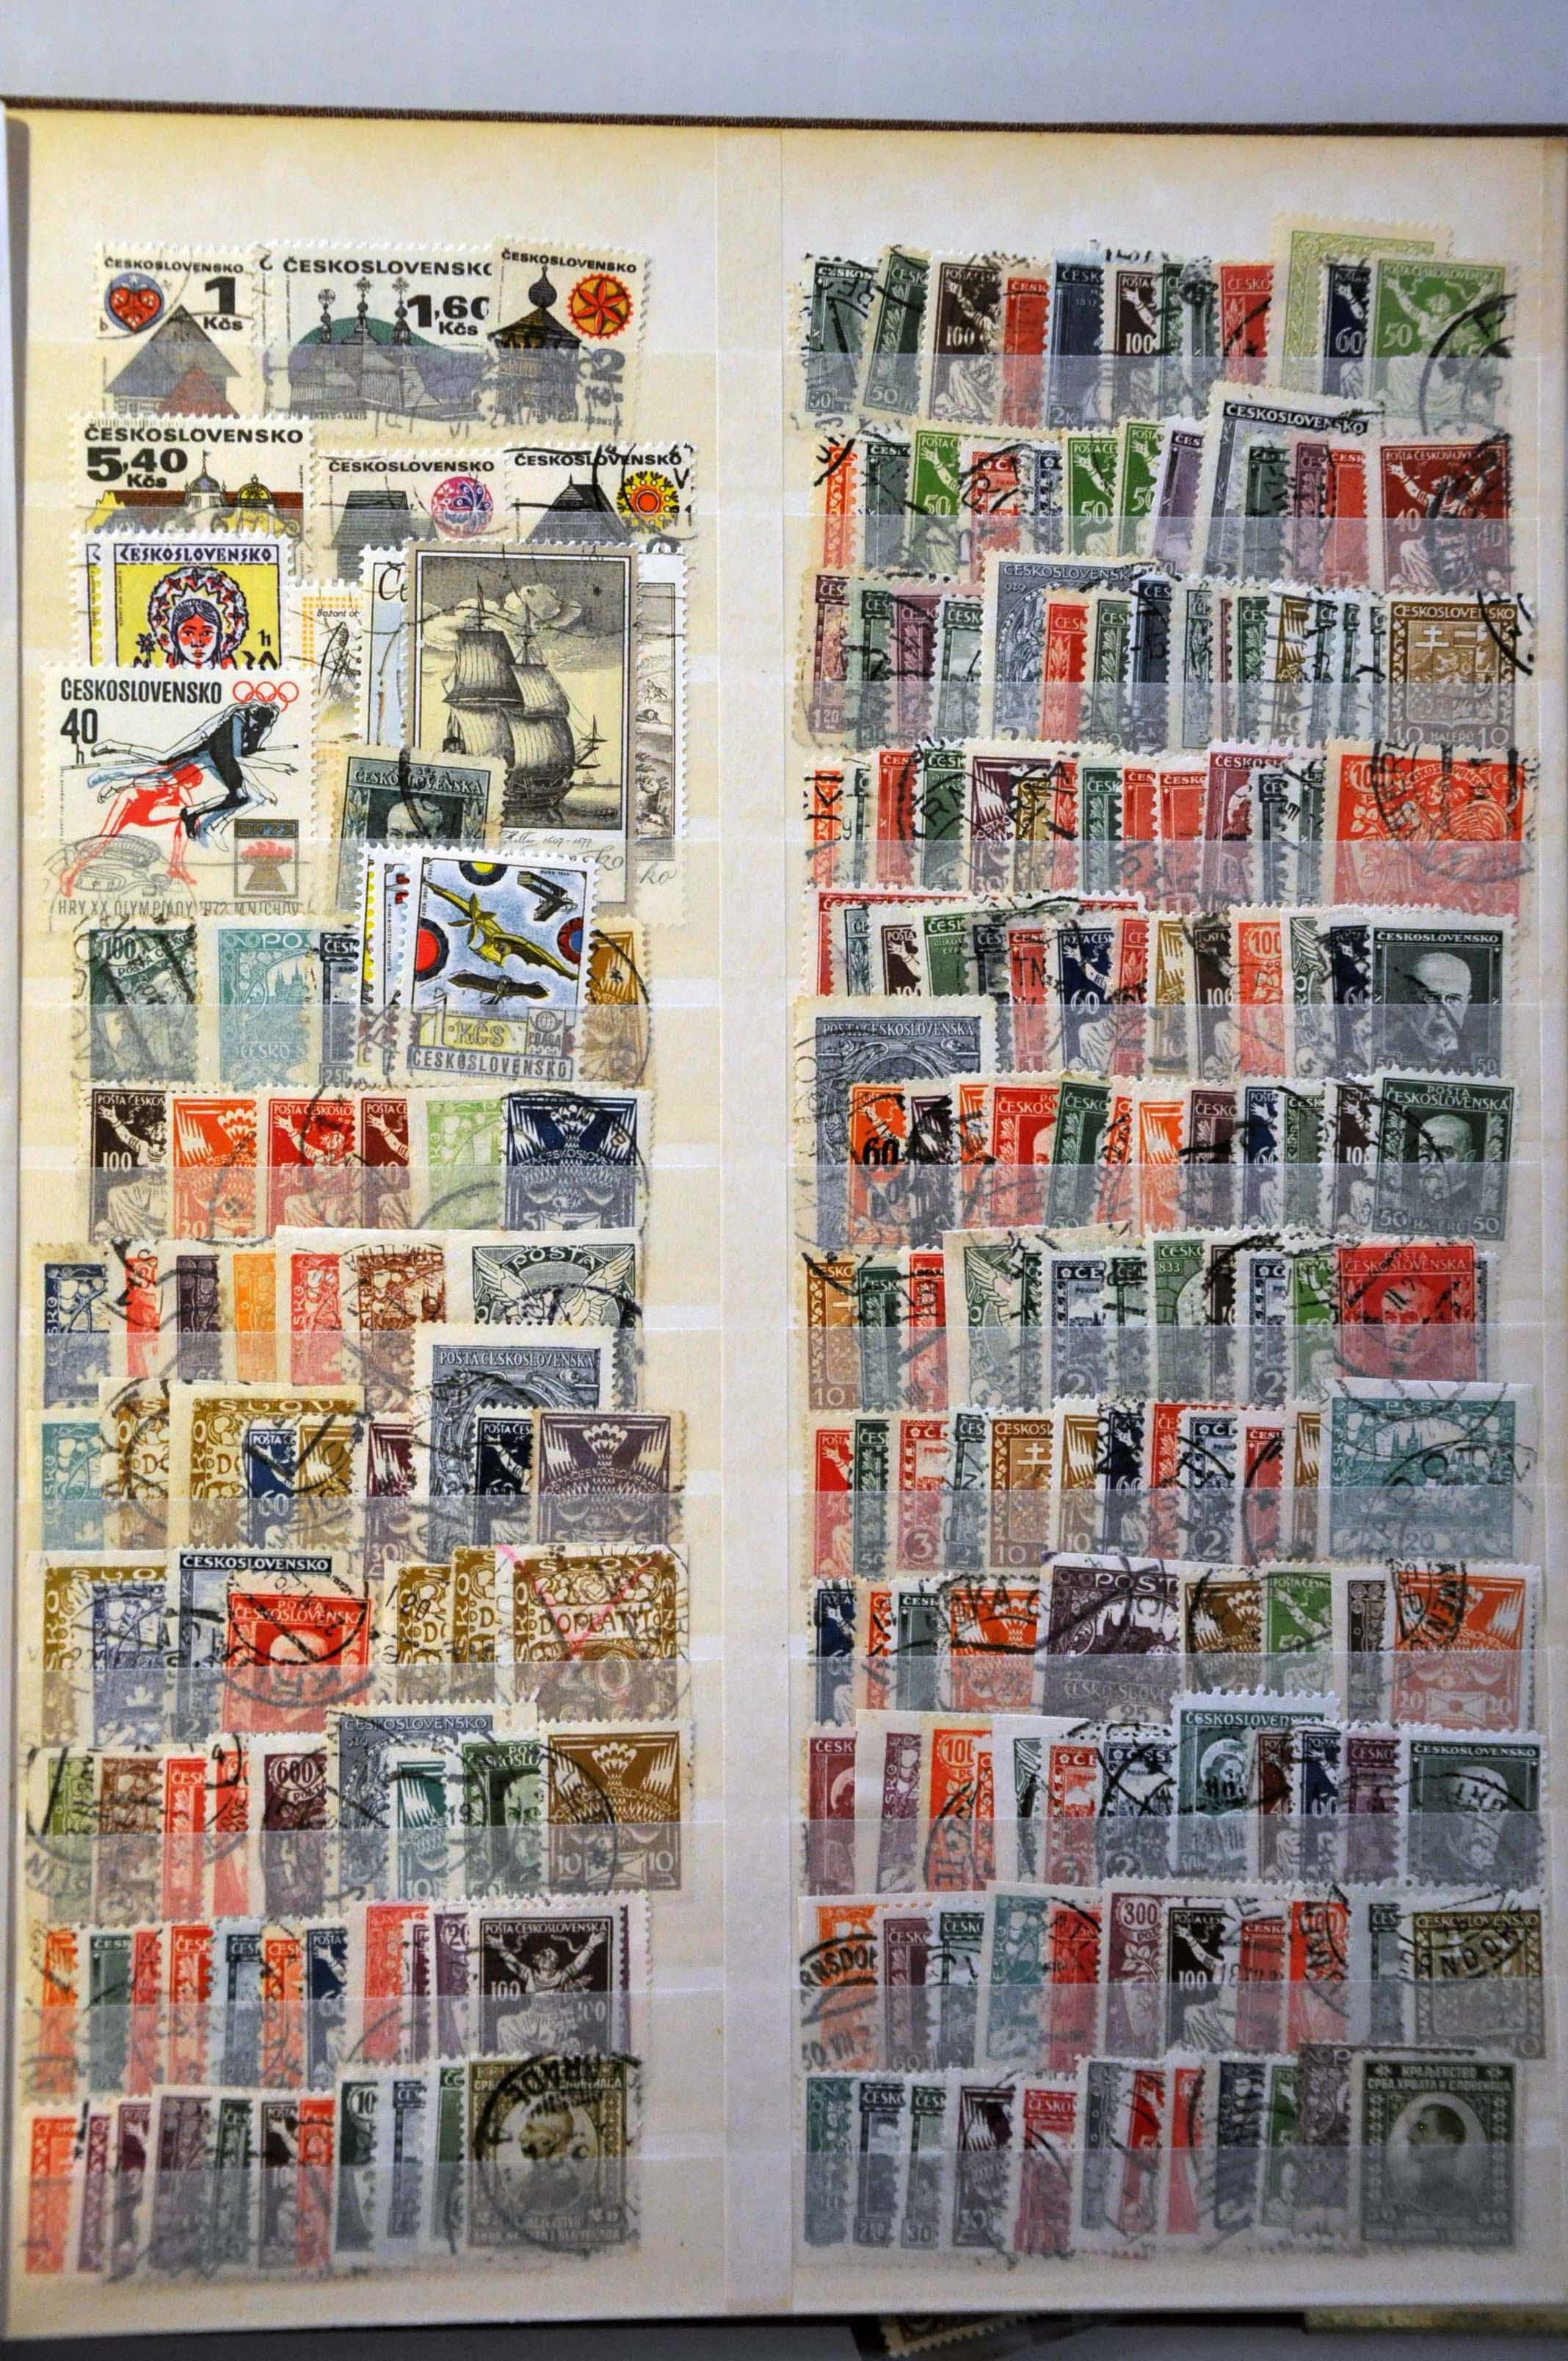 Lot 1051 - European Countries European Countries -  Corinphila Veilingen Auction 244 -Netherlands and former colonies, WW2 Postal History, Bosnia, German and British colonies, Egypt. - Day 1